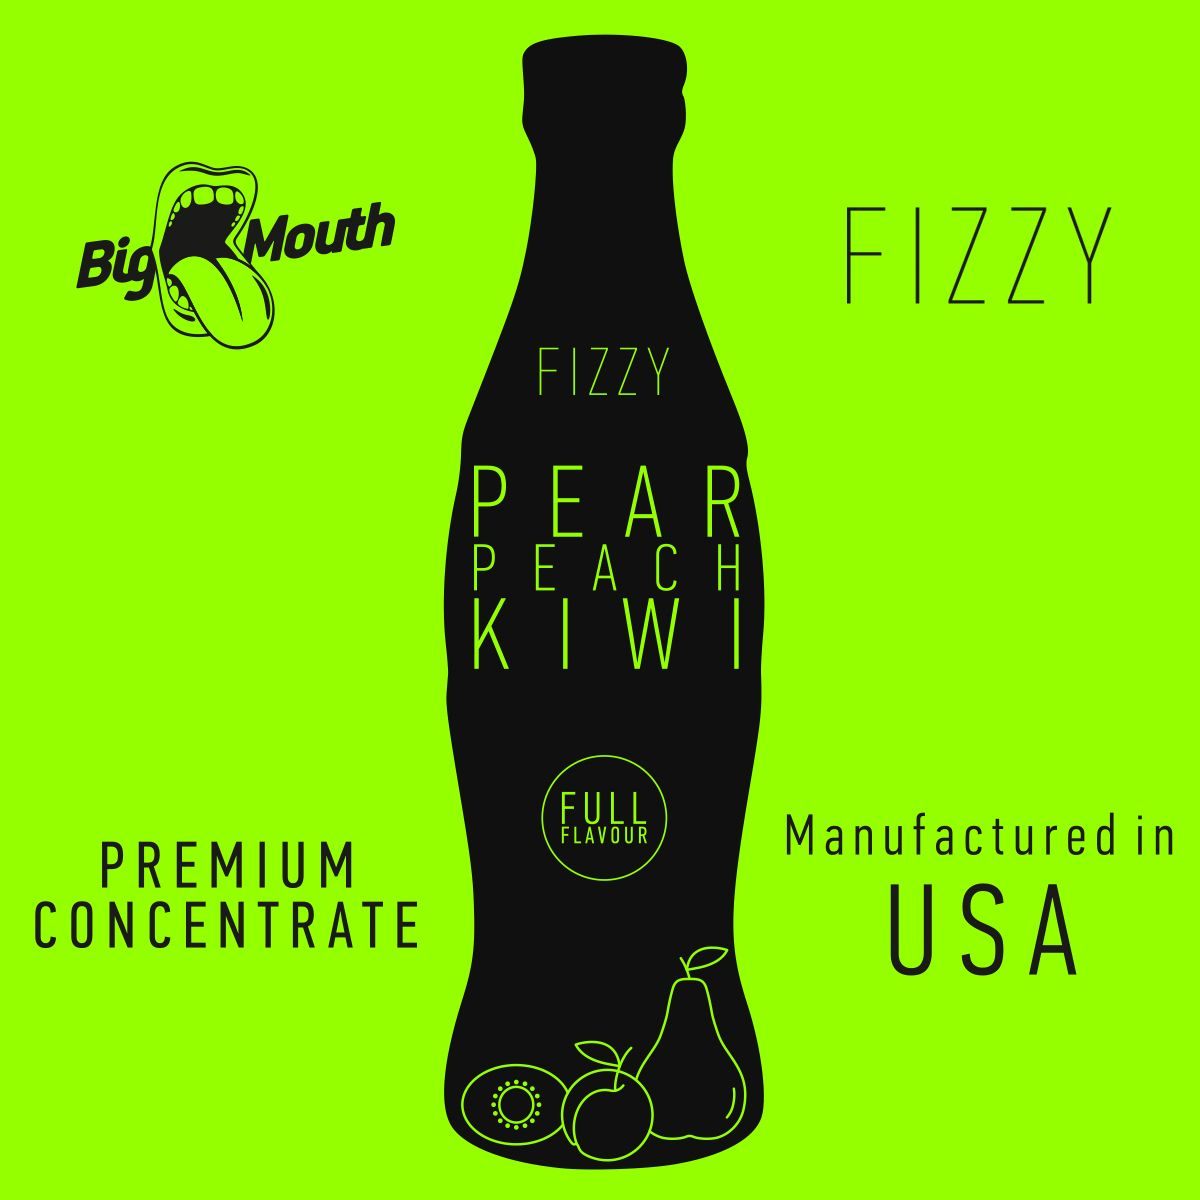 Příchuť Big Mouth FIZZY - Hruška, broskev, kiwi - 10ml